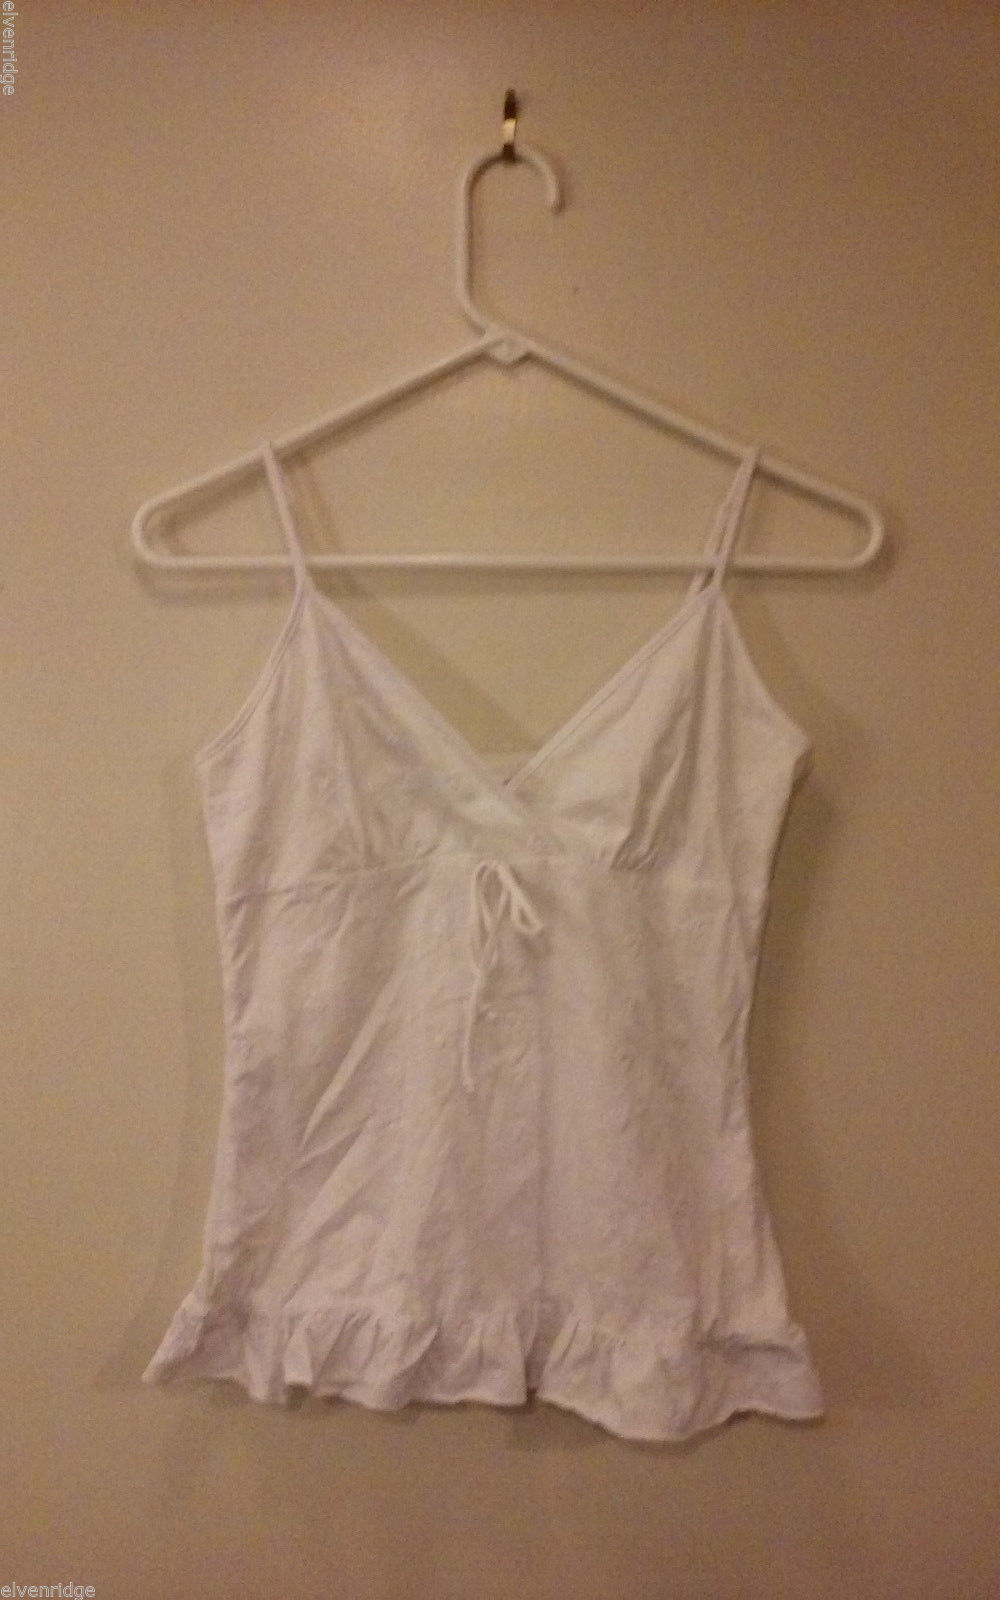 No Boundaries Juniors' Size 7/9 White Cami Camisole Floral Eyelet w/ Ruffle Trim